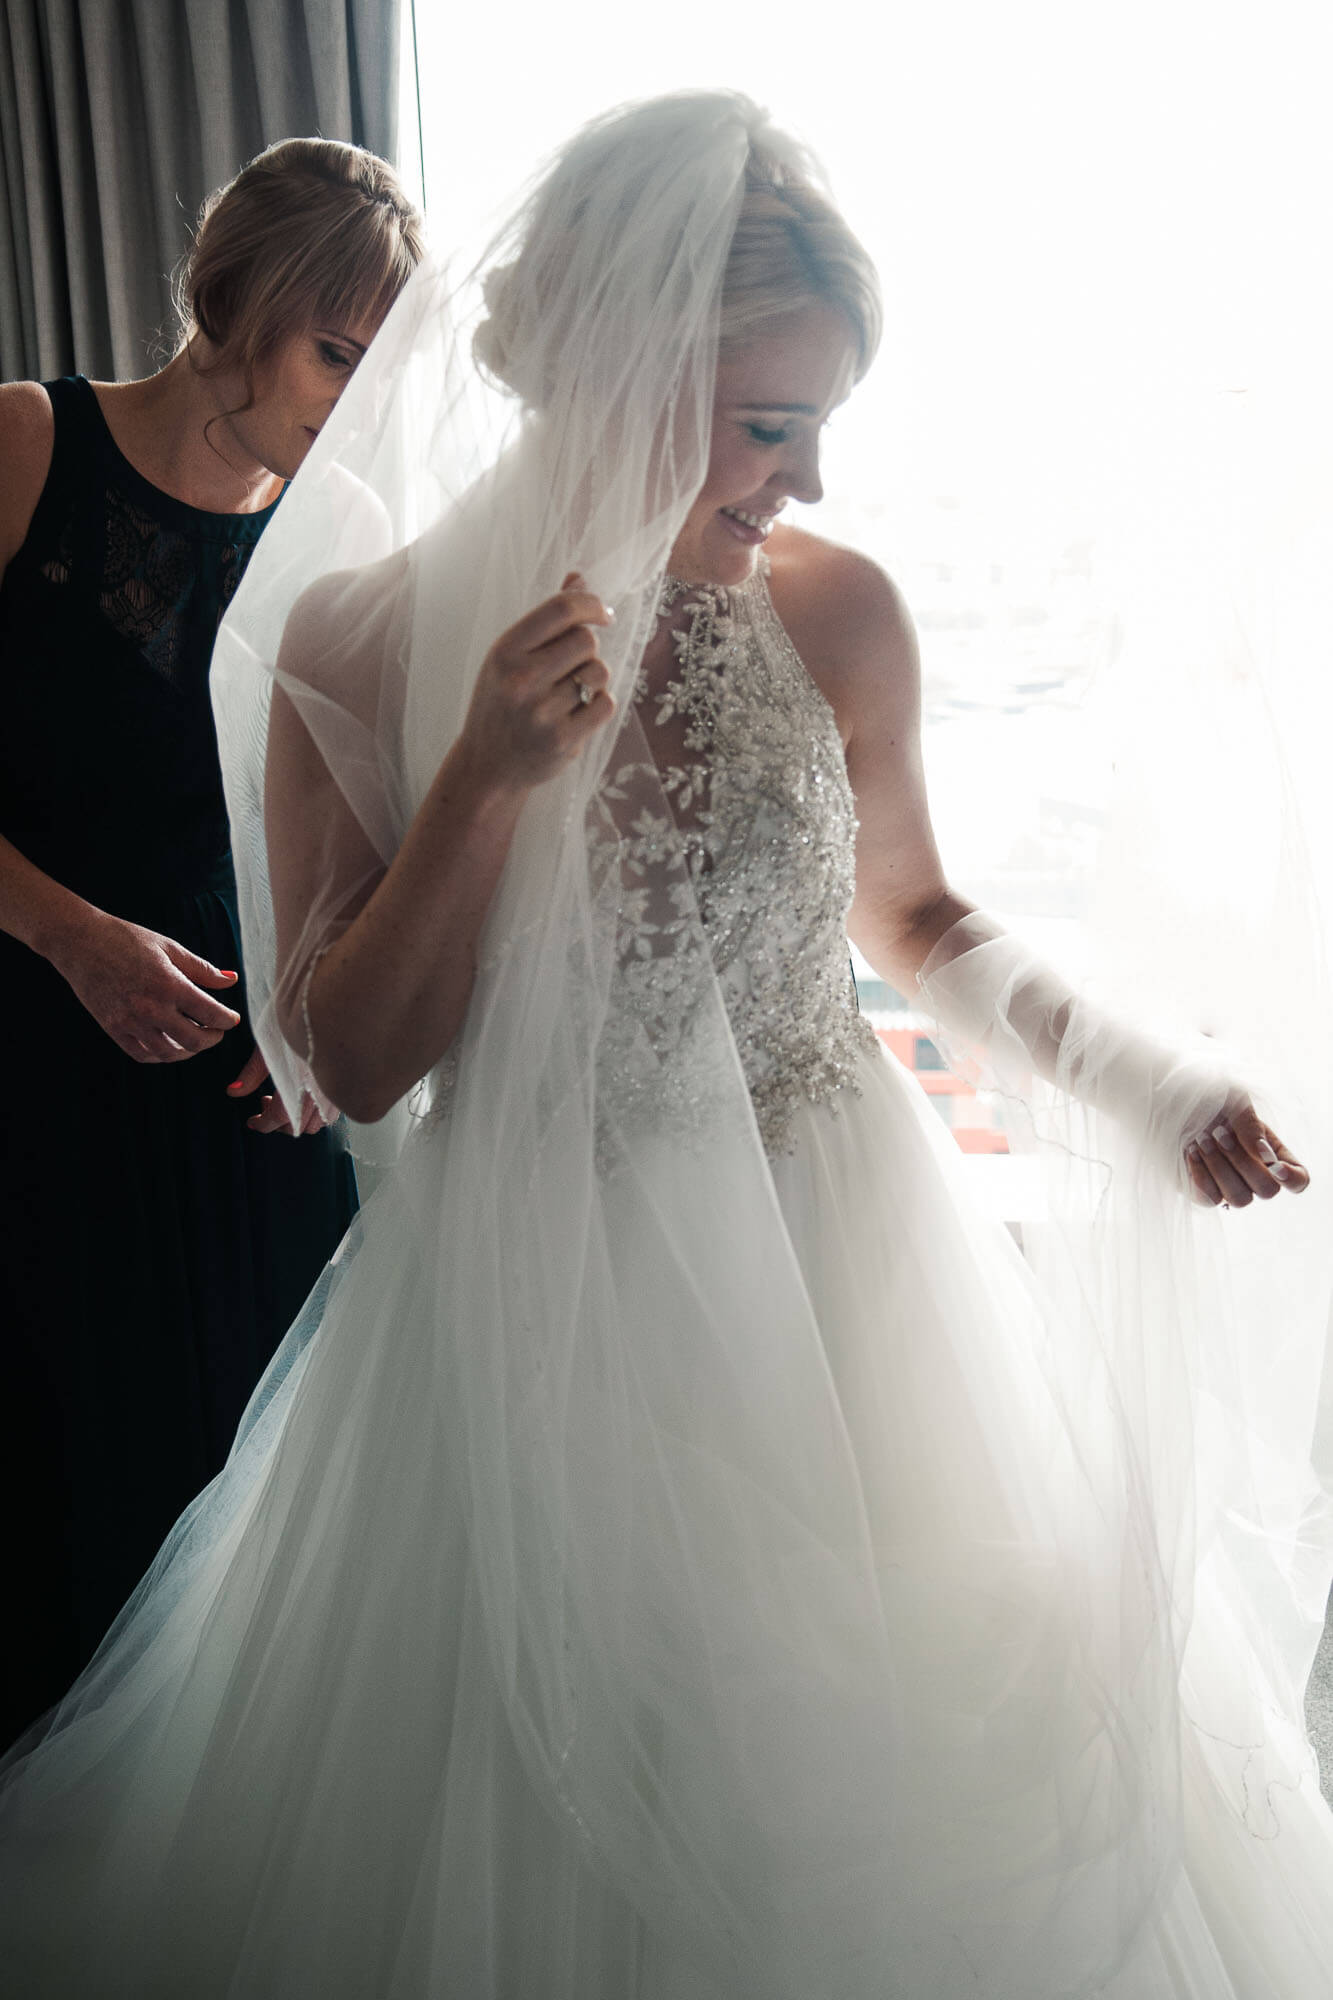 bride-getting-dressed-with-veil.jpg